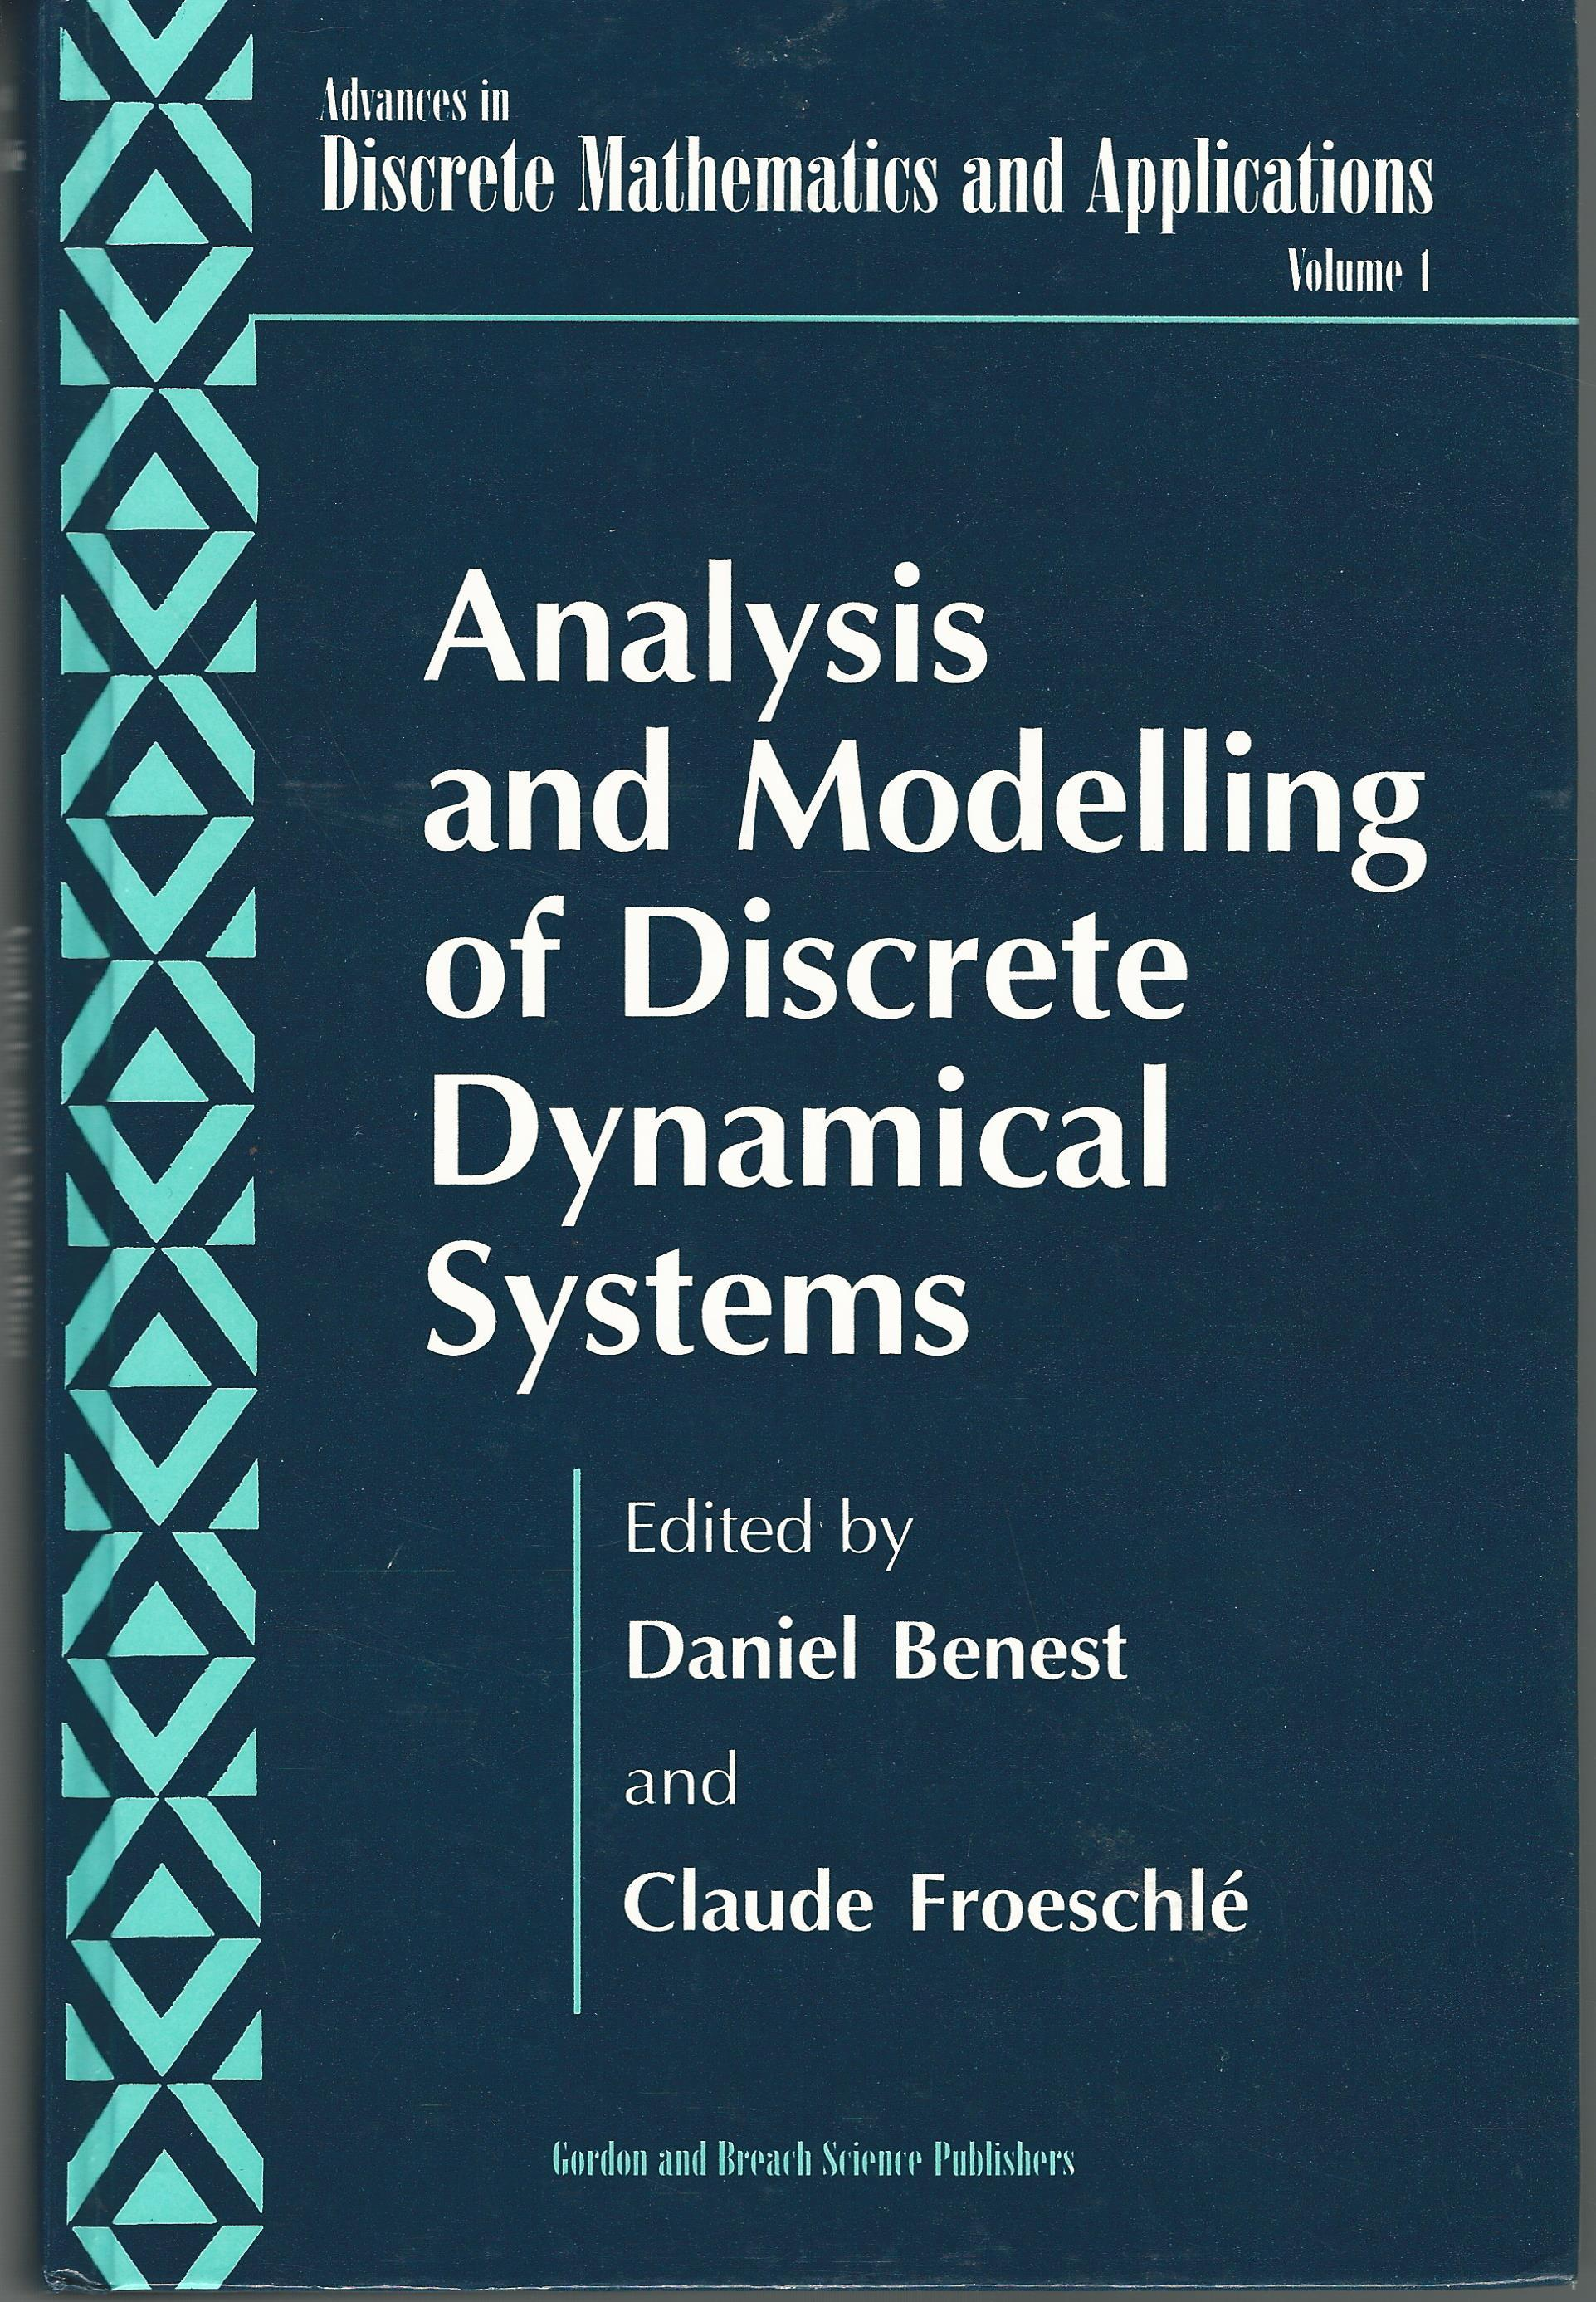 Analysis and Modelling of Discrete Dynamical Systems (Advances in Discrete Mathematics & Applications Series)